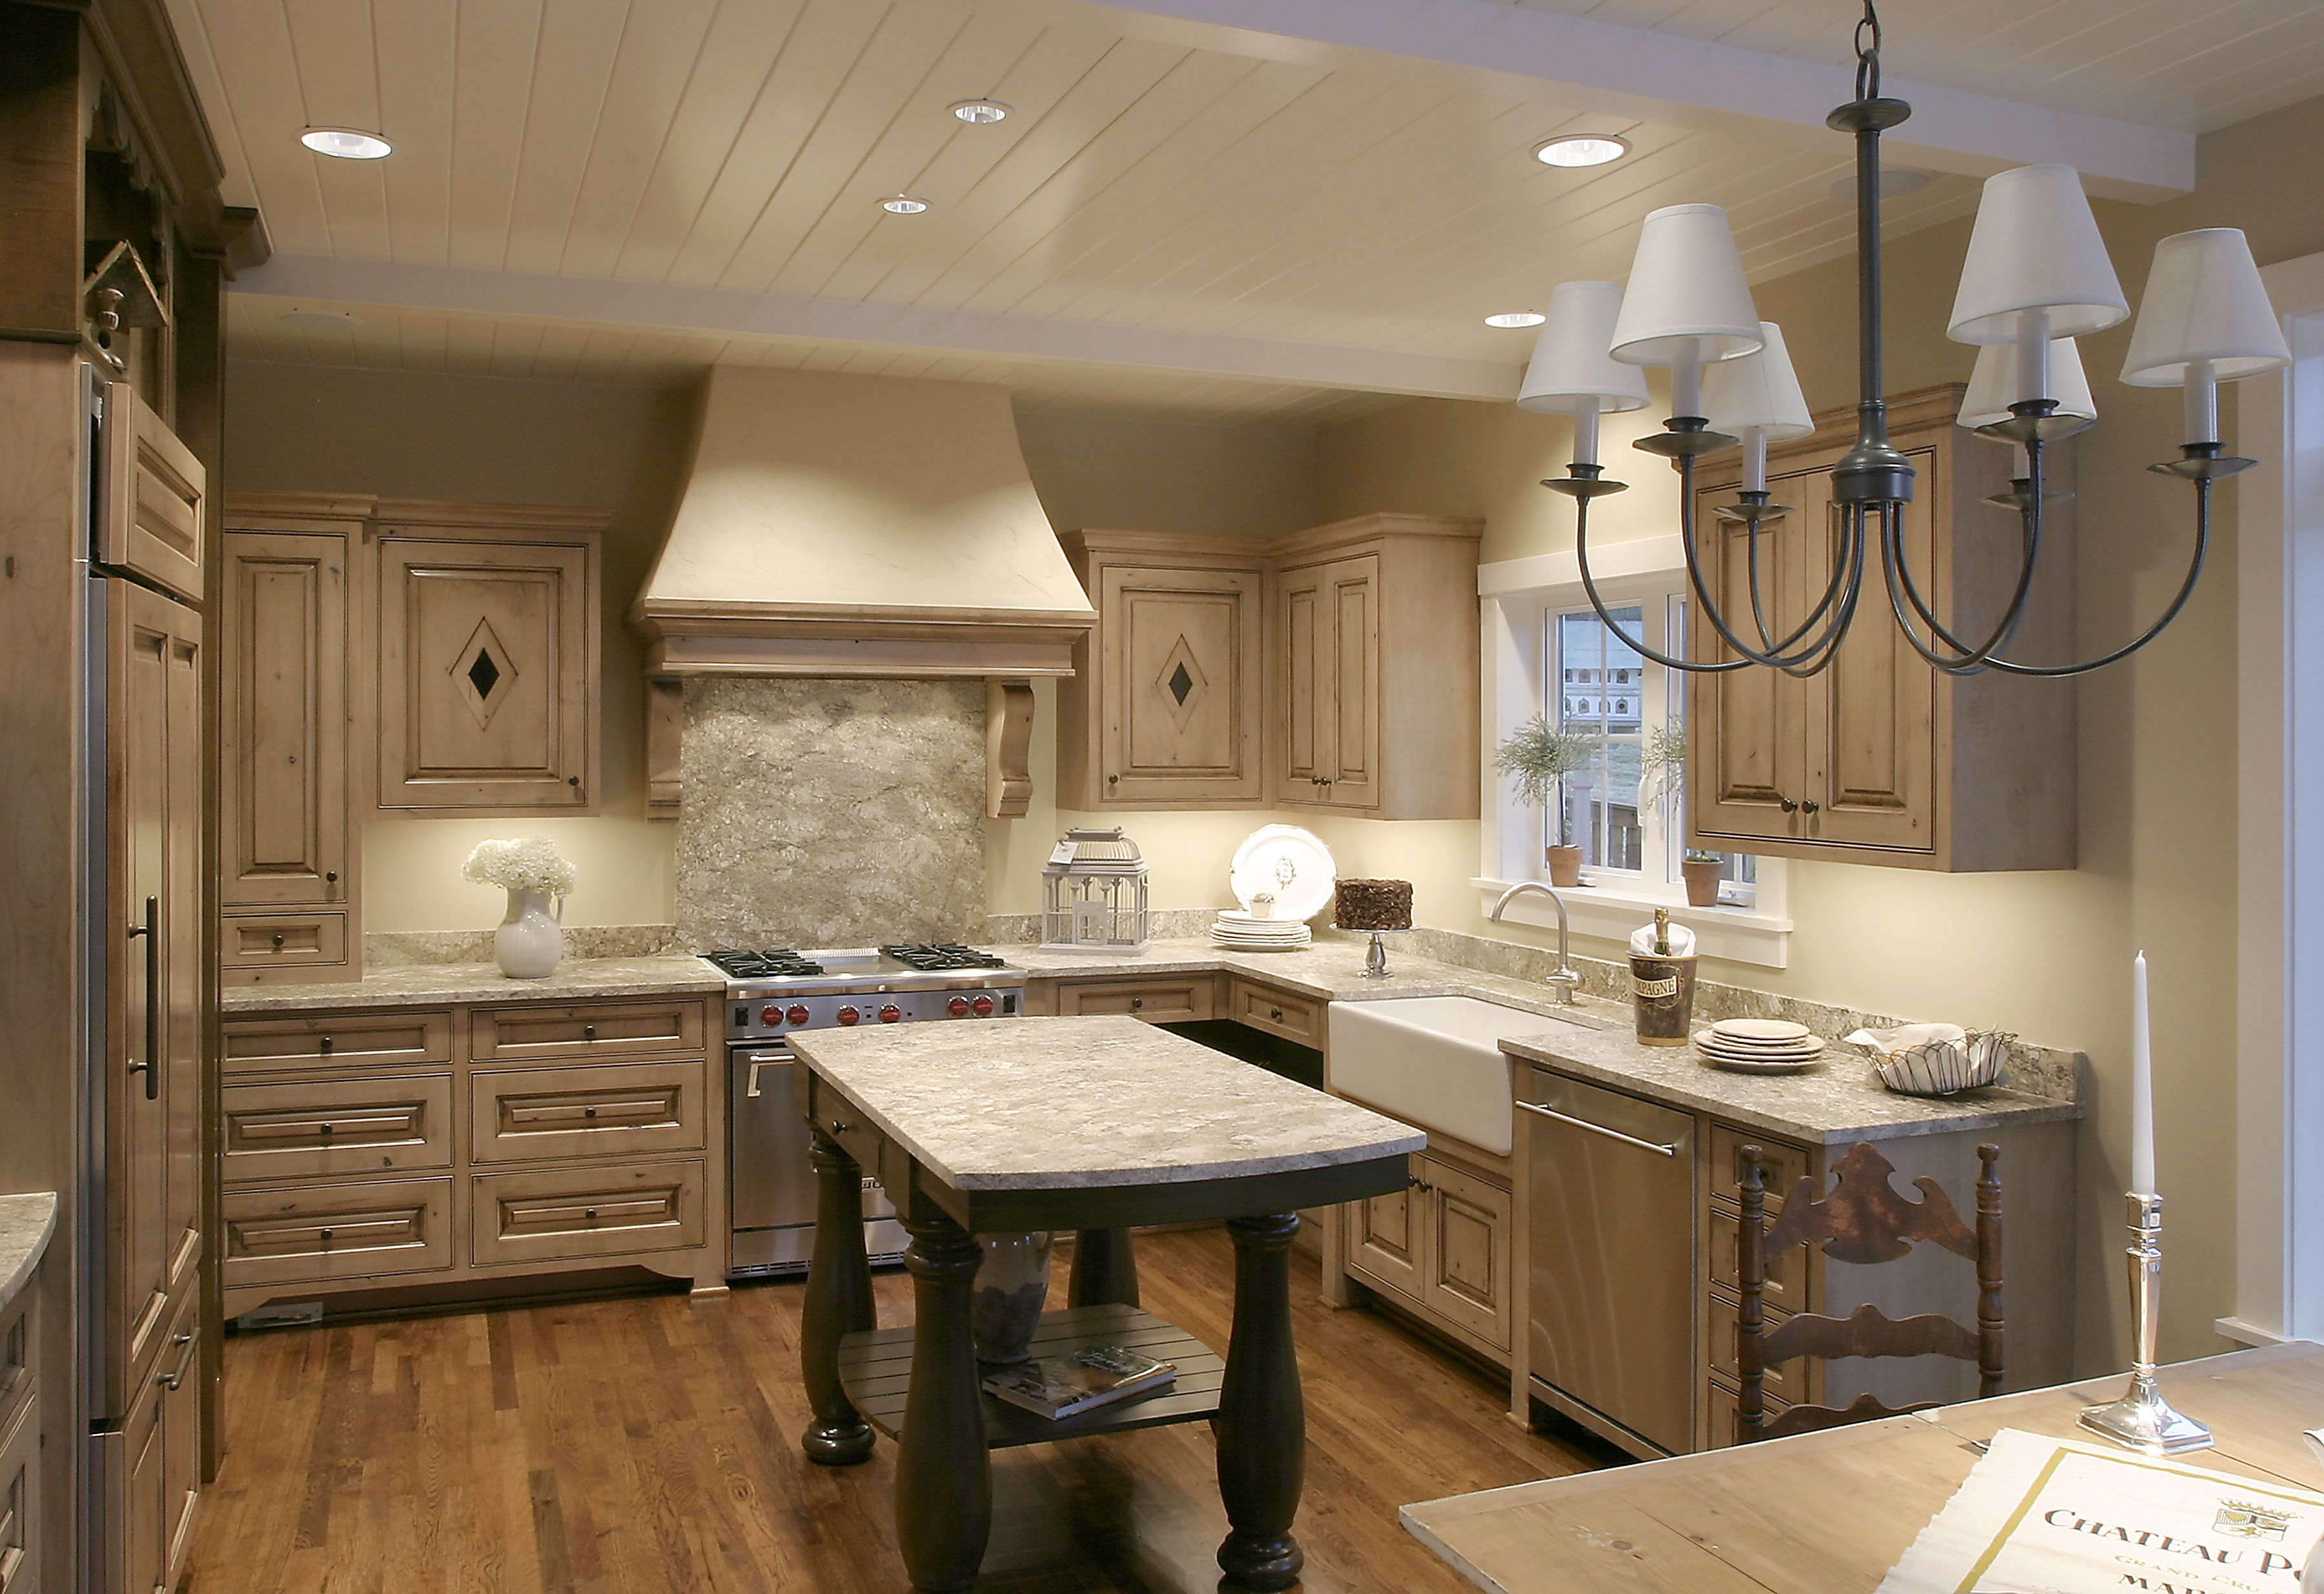 Glazed knotty alder cabinetry topped with honed granite Hickory